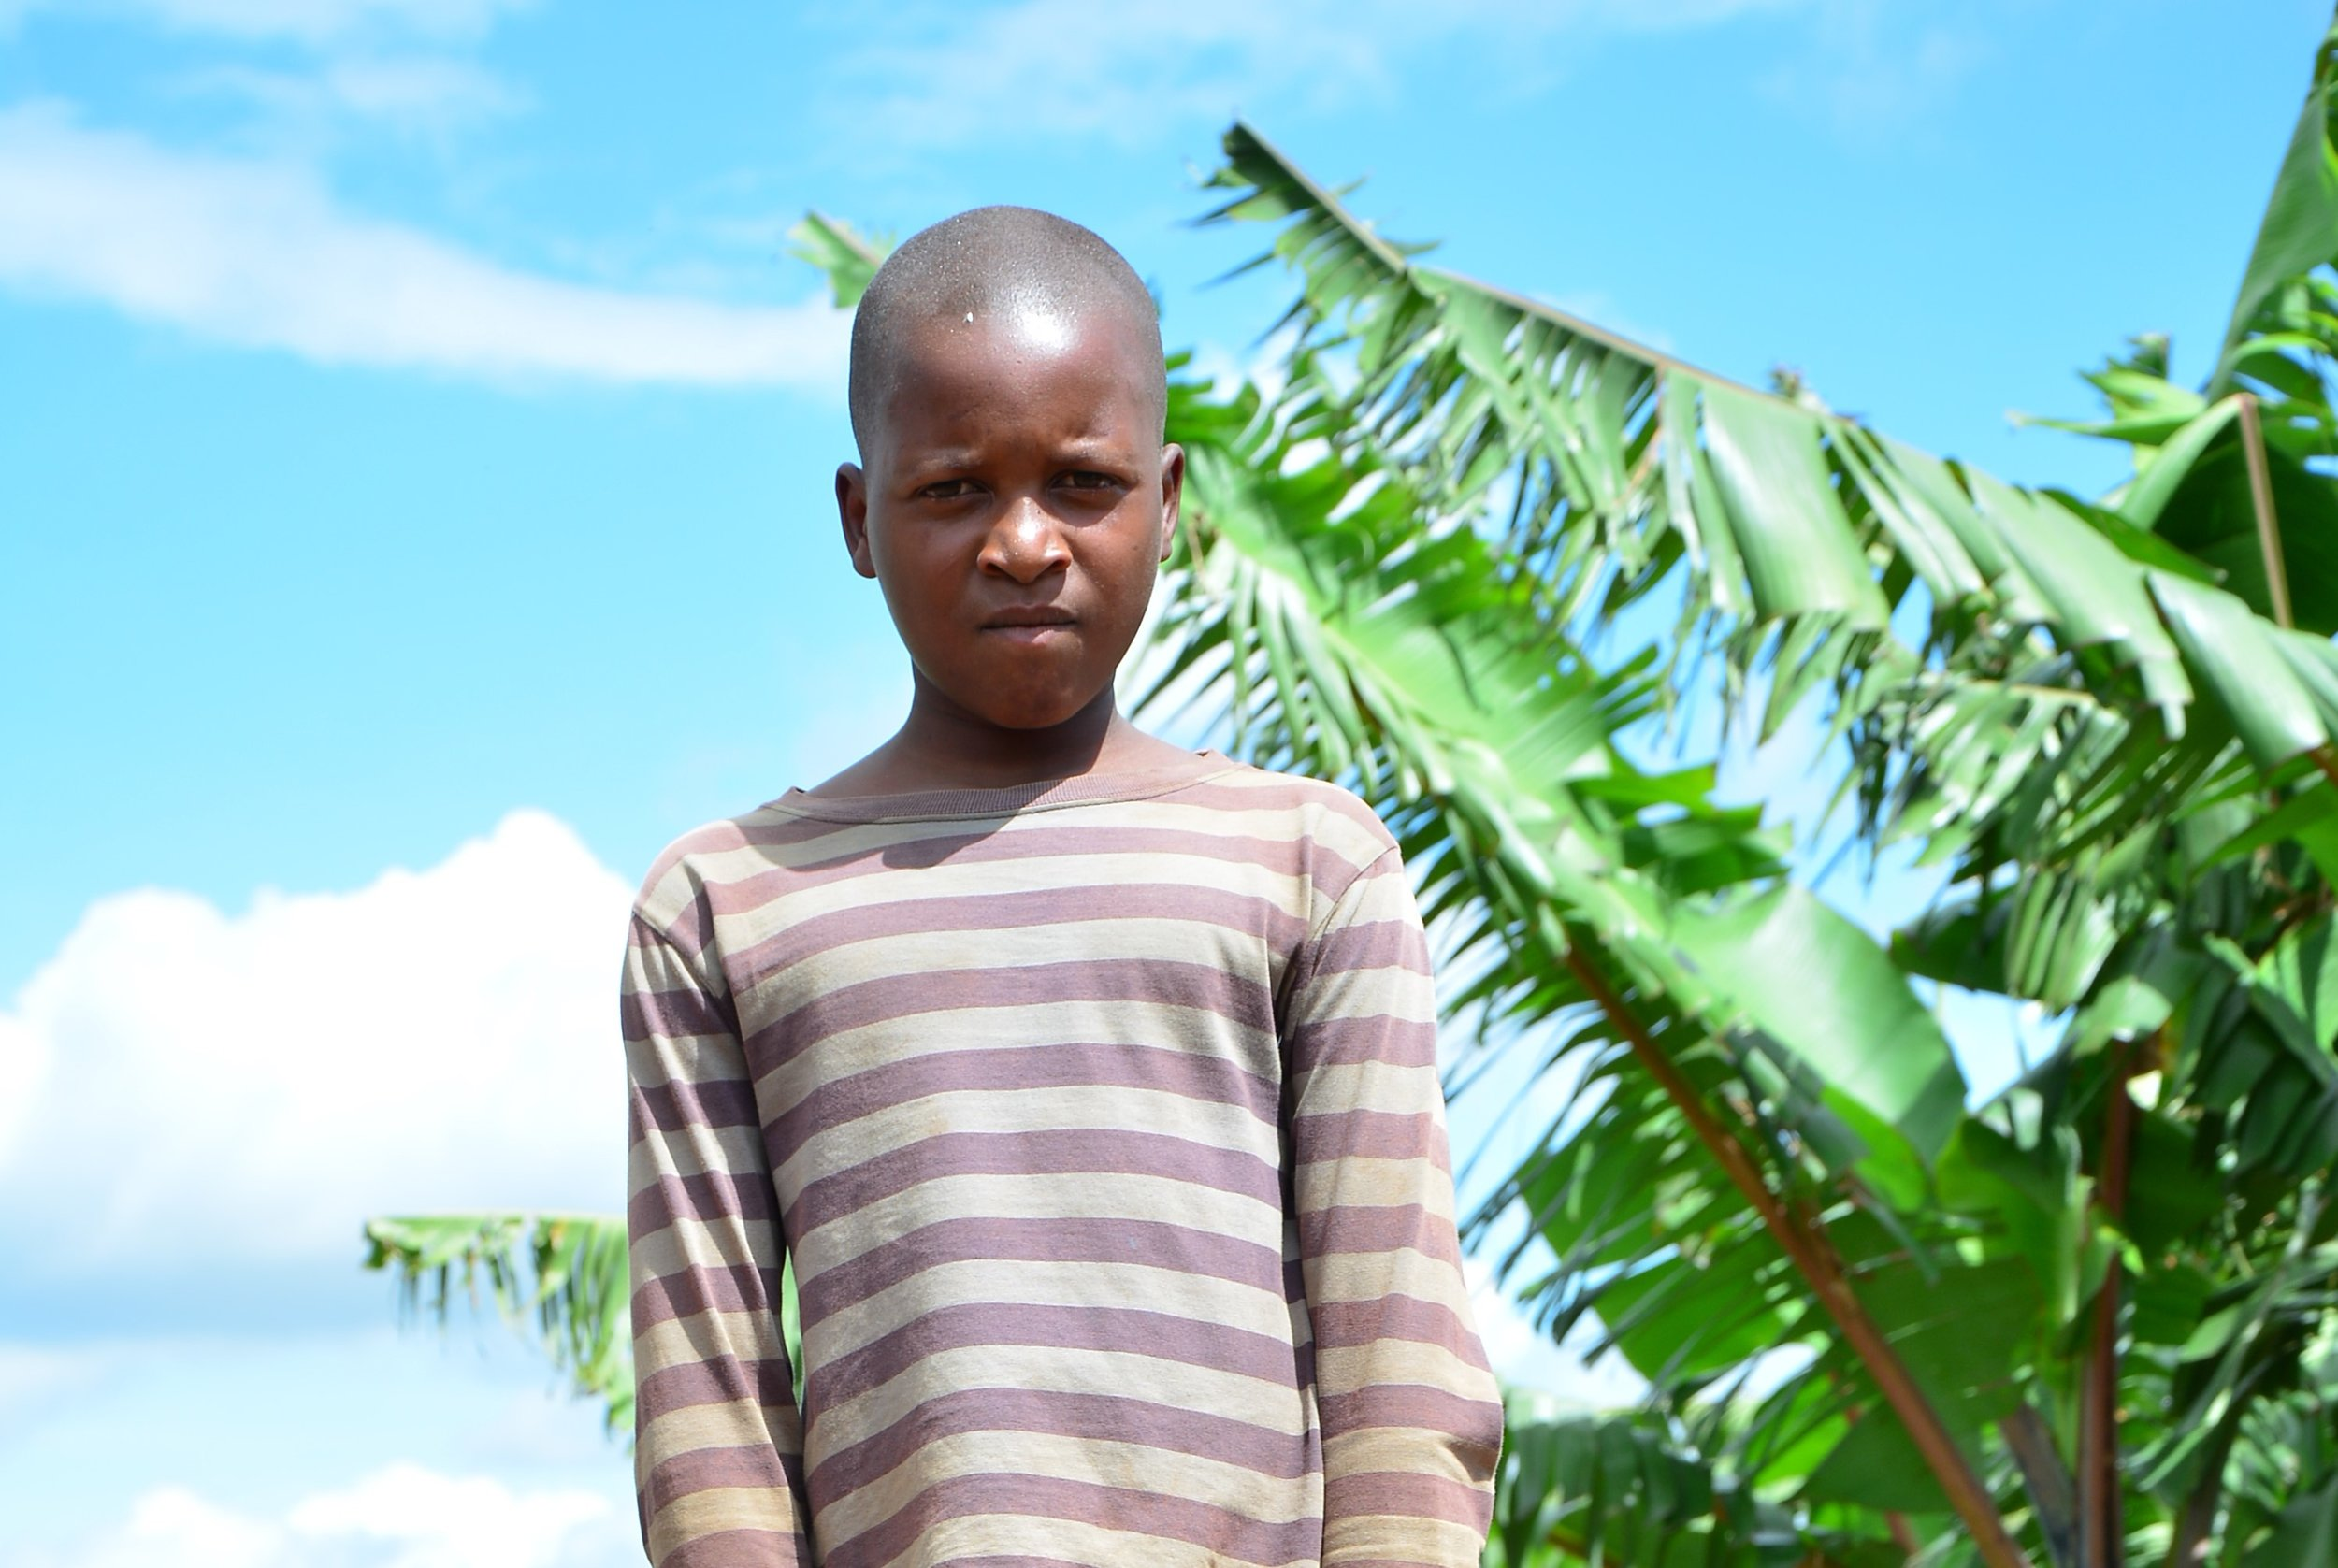 Meet David Niyogisubizo, a 12-year-old boy currently enrolled in school because of Seven United's support